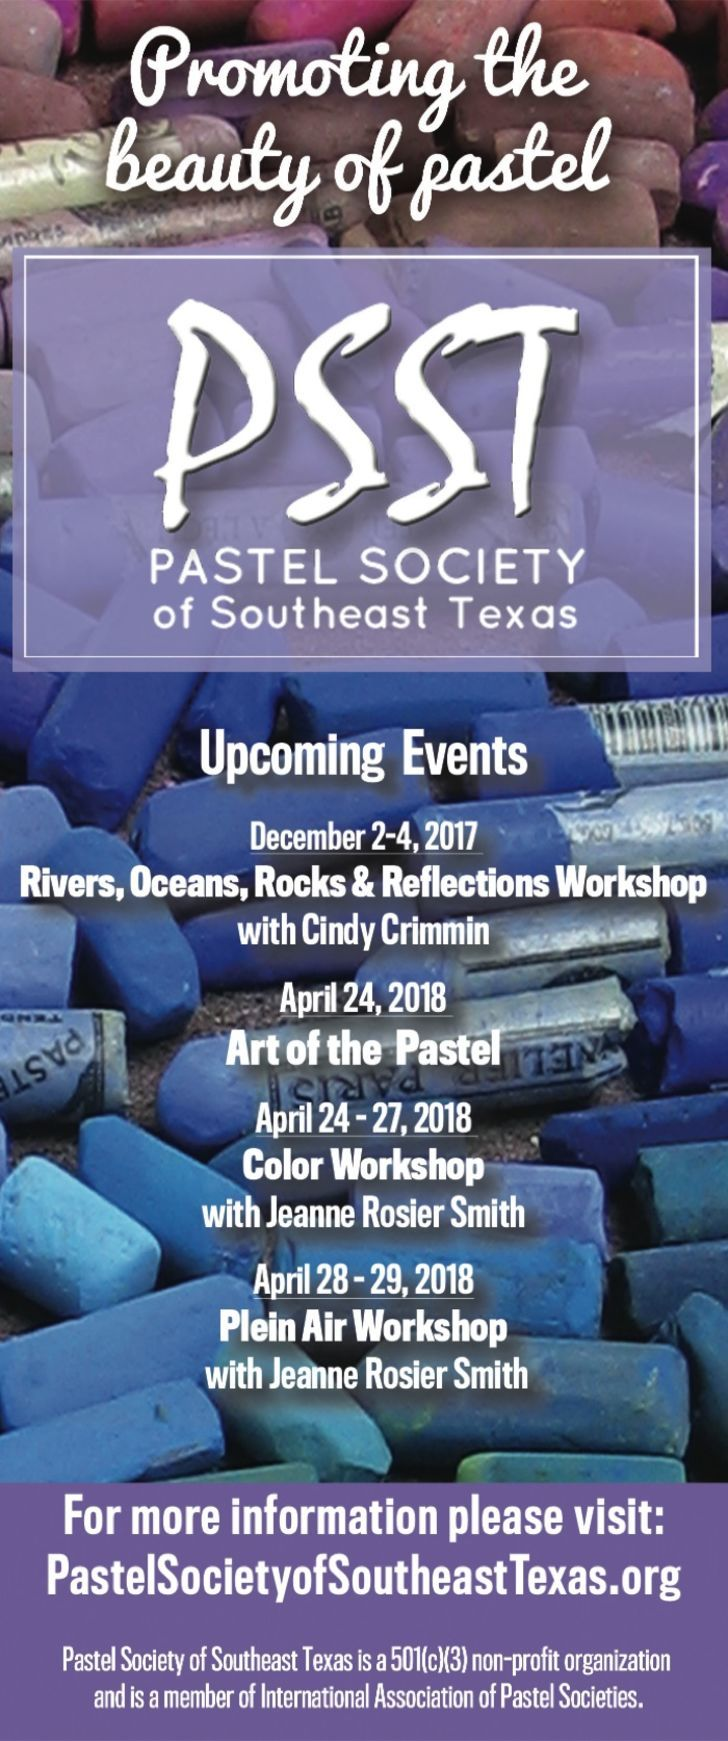 Pastel Society of Southeast Texas